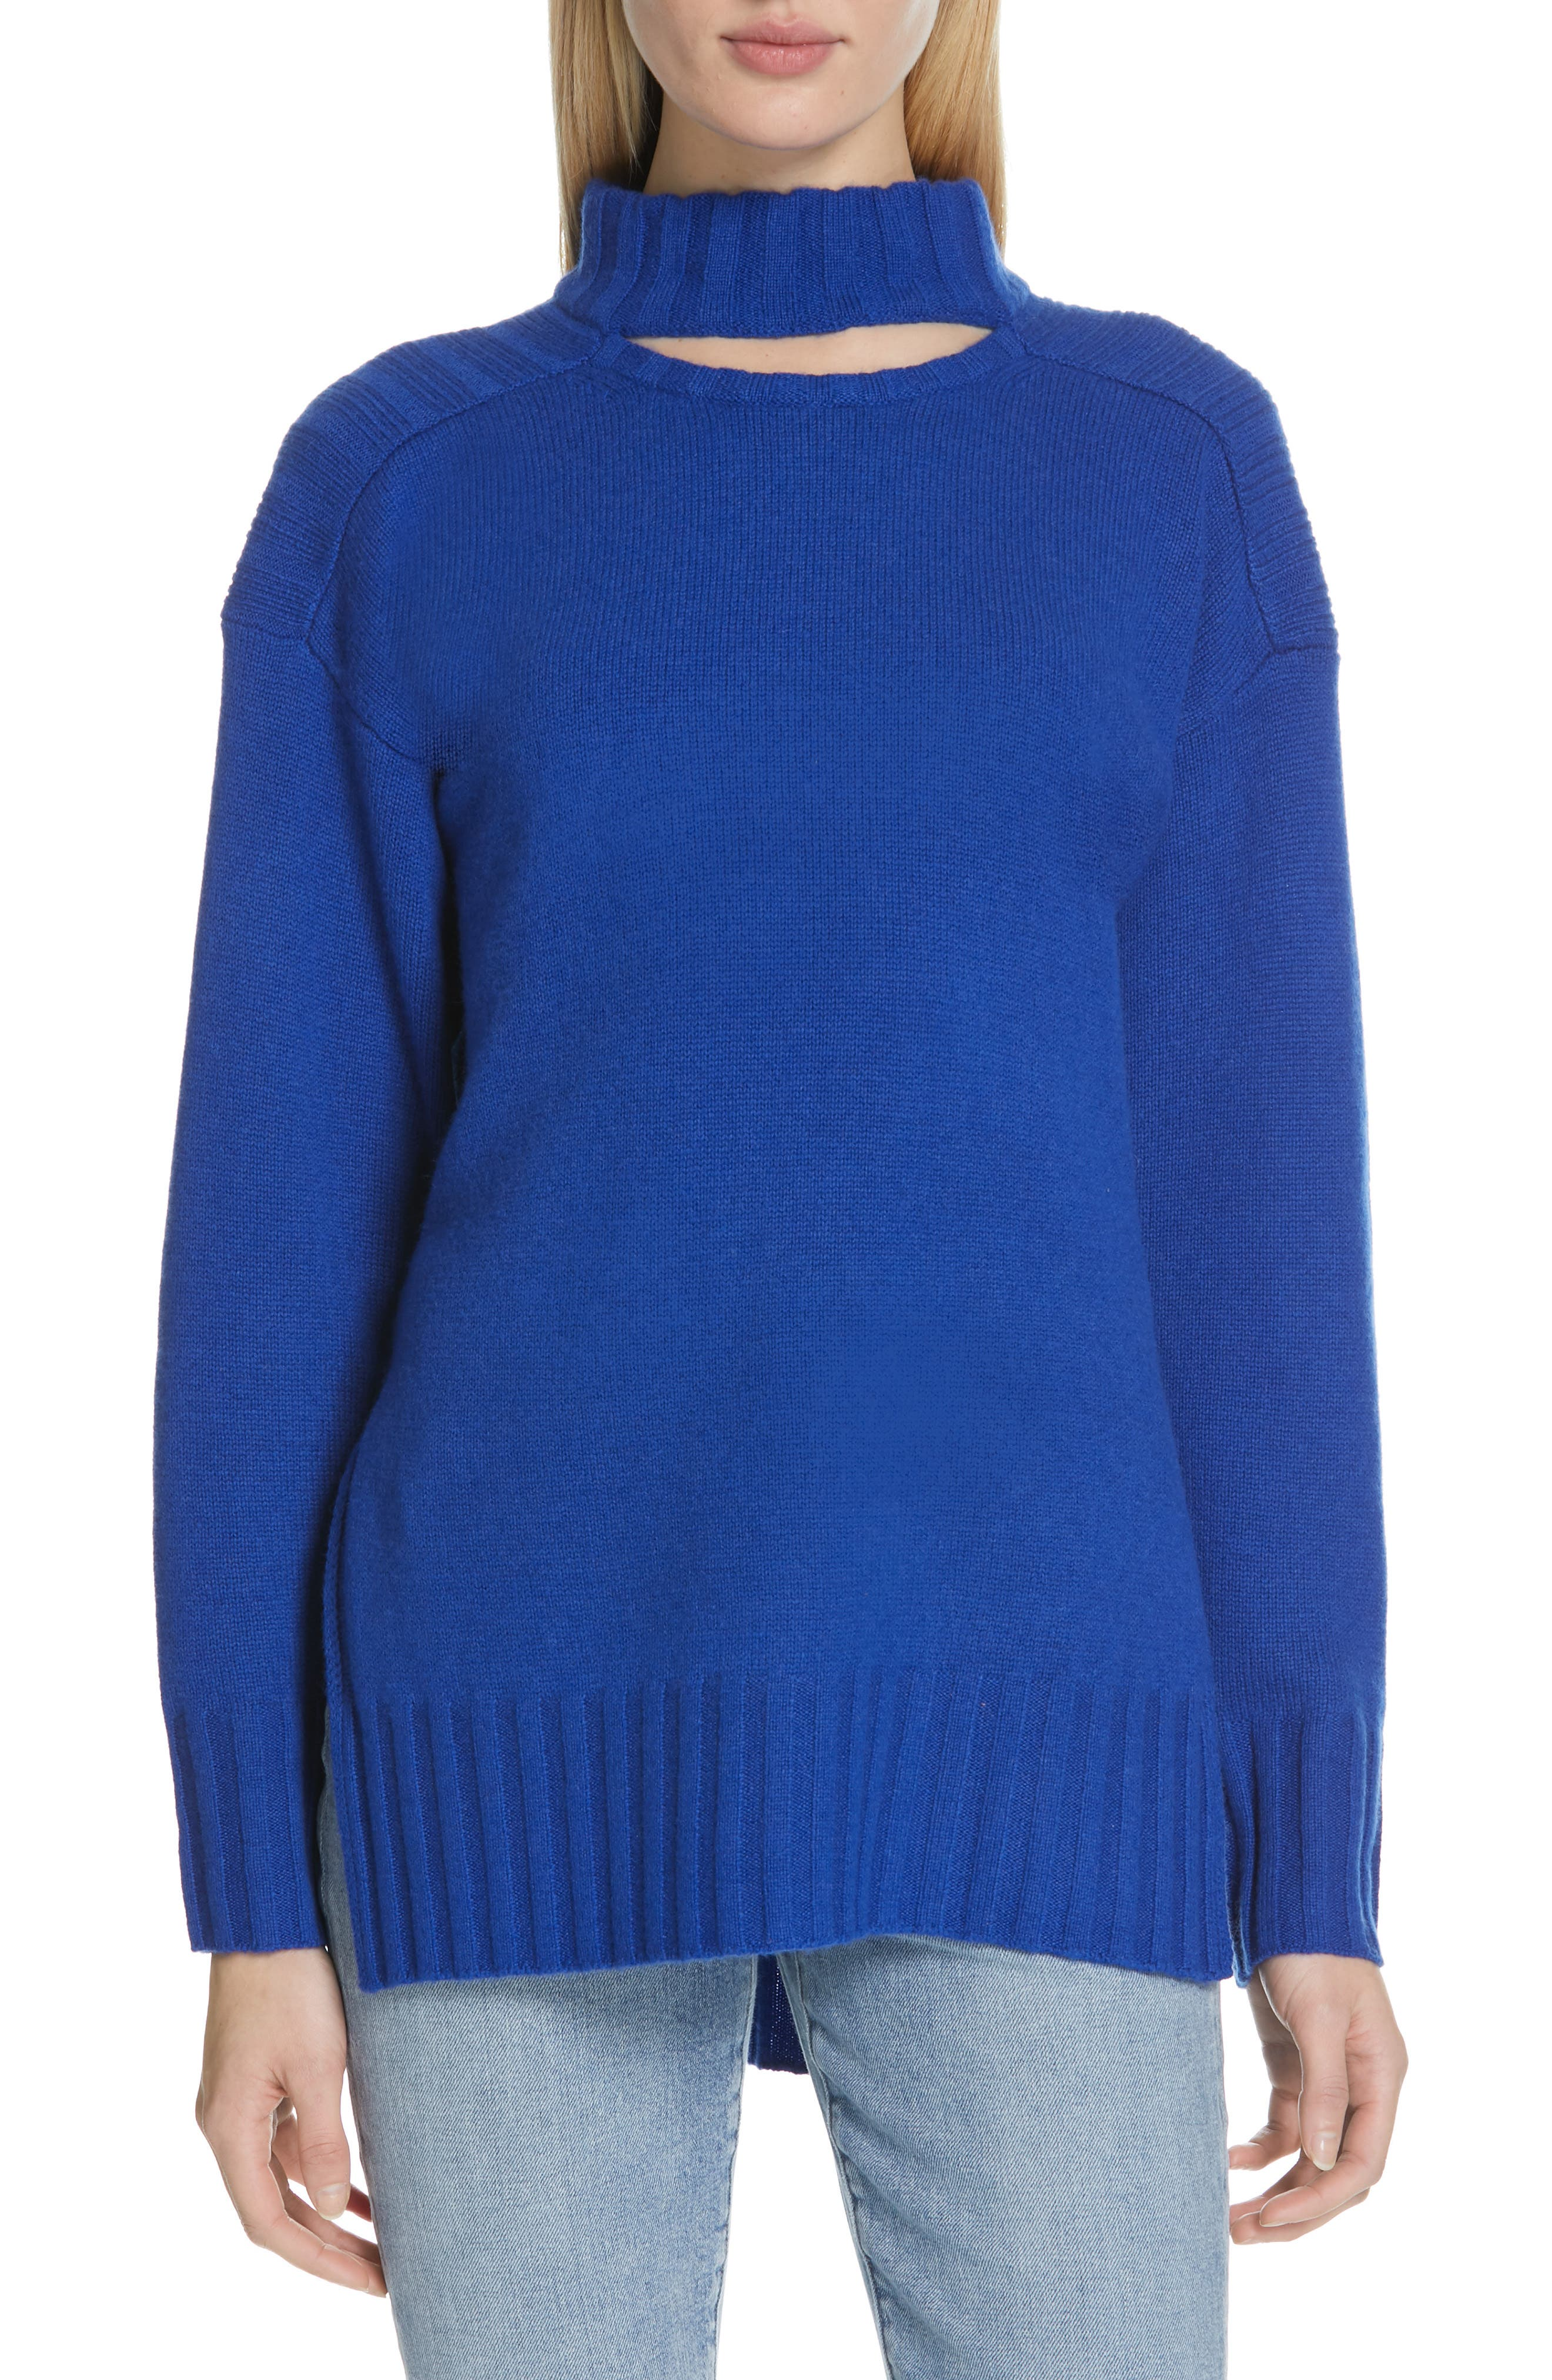 Stratford Wool & Cashmere Sweater,                             Main thumbnail 1, color,                             HYPER BLUE